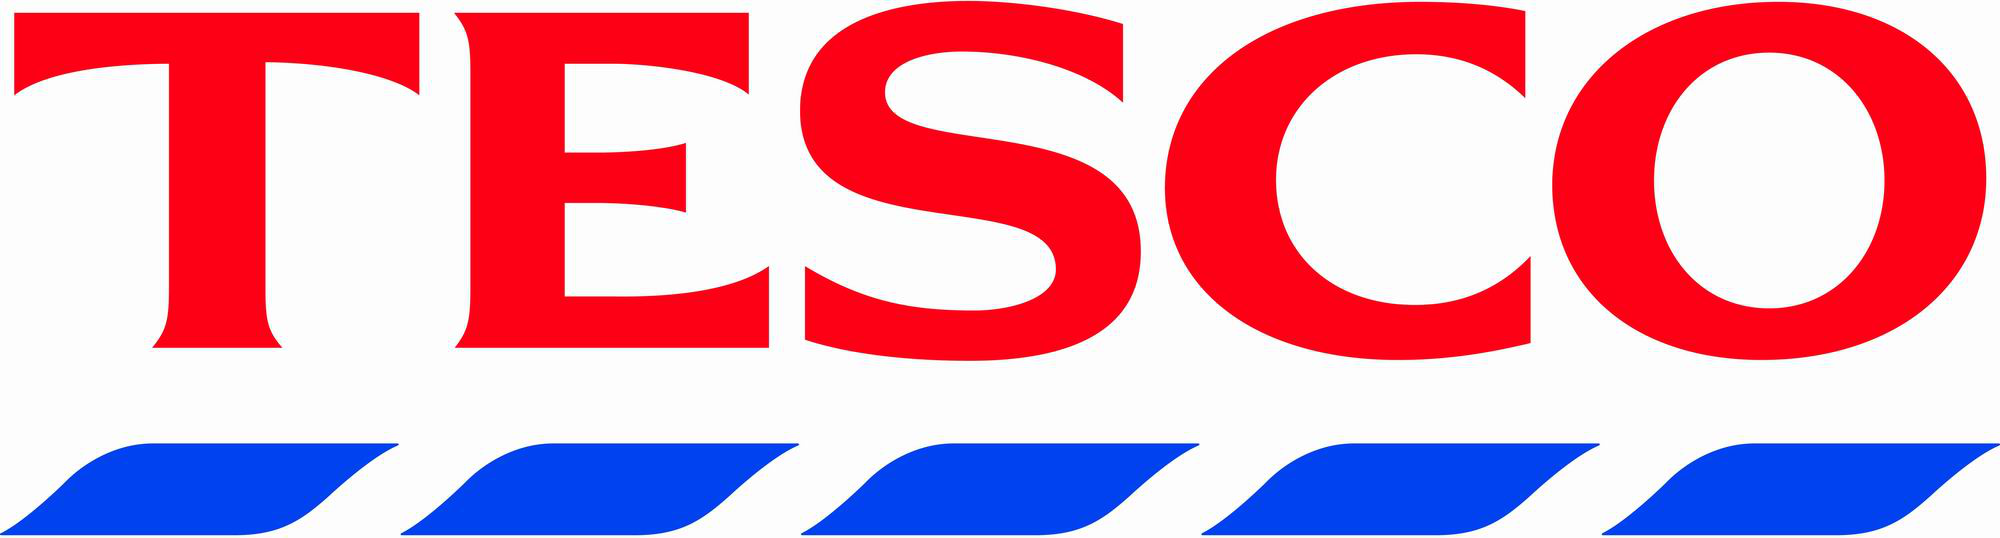 About Tesco